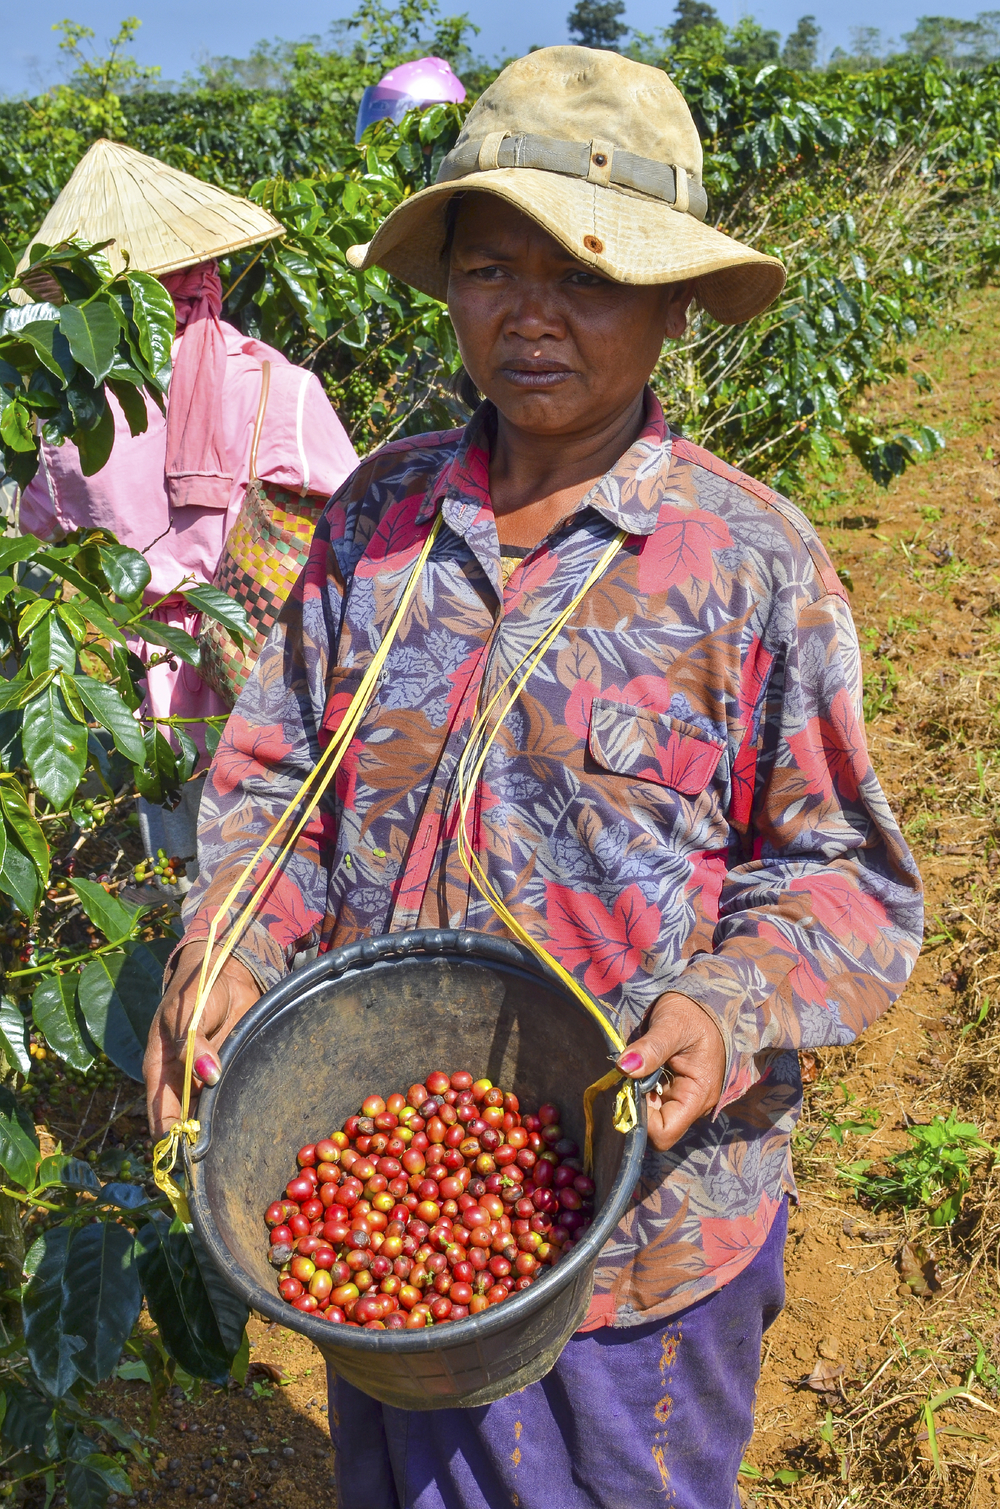 Female-farmer-with-a-bucket-of-red-arabica-coffee-berries-000037534418_Large.jpg